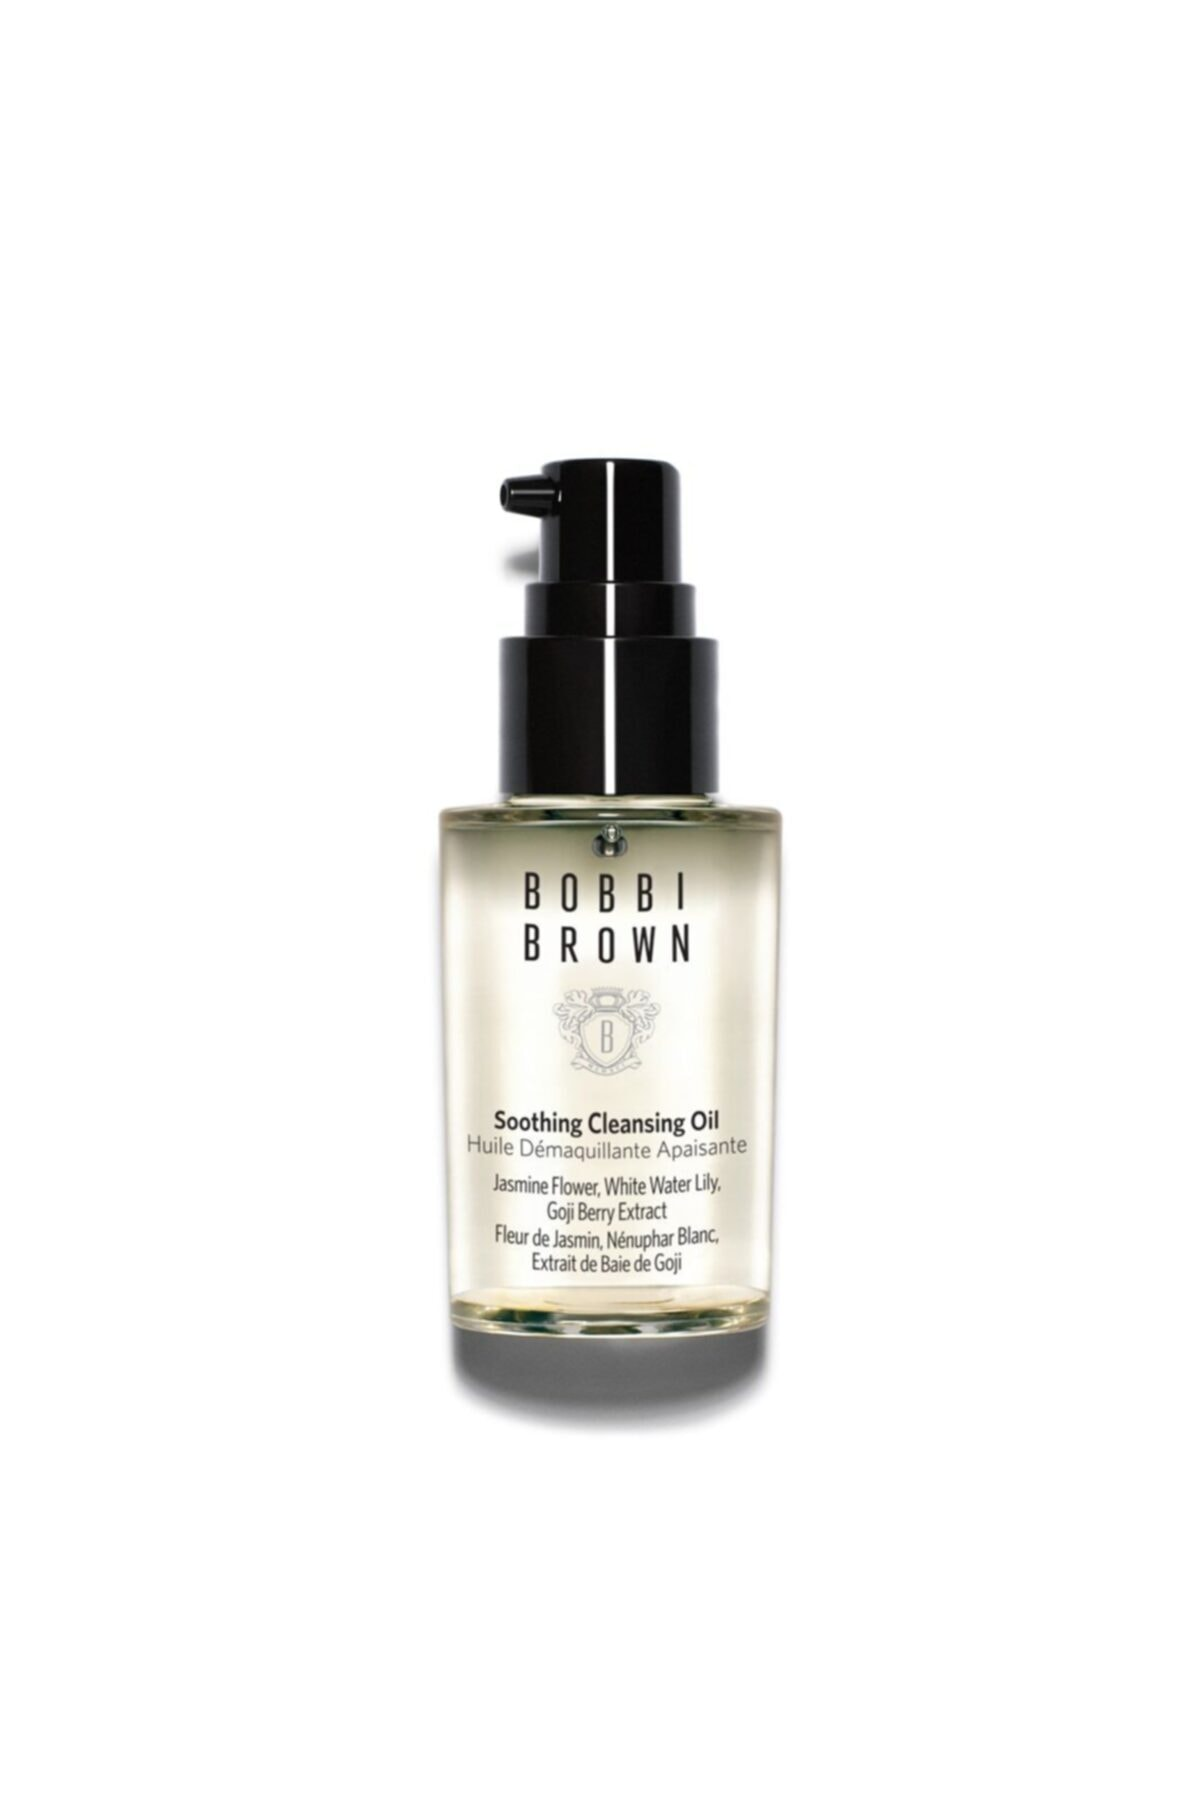 BOBBI BROWN Bobbi To Go - Soothing Cleansing Oil 30ml/1floz 1